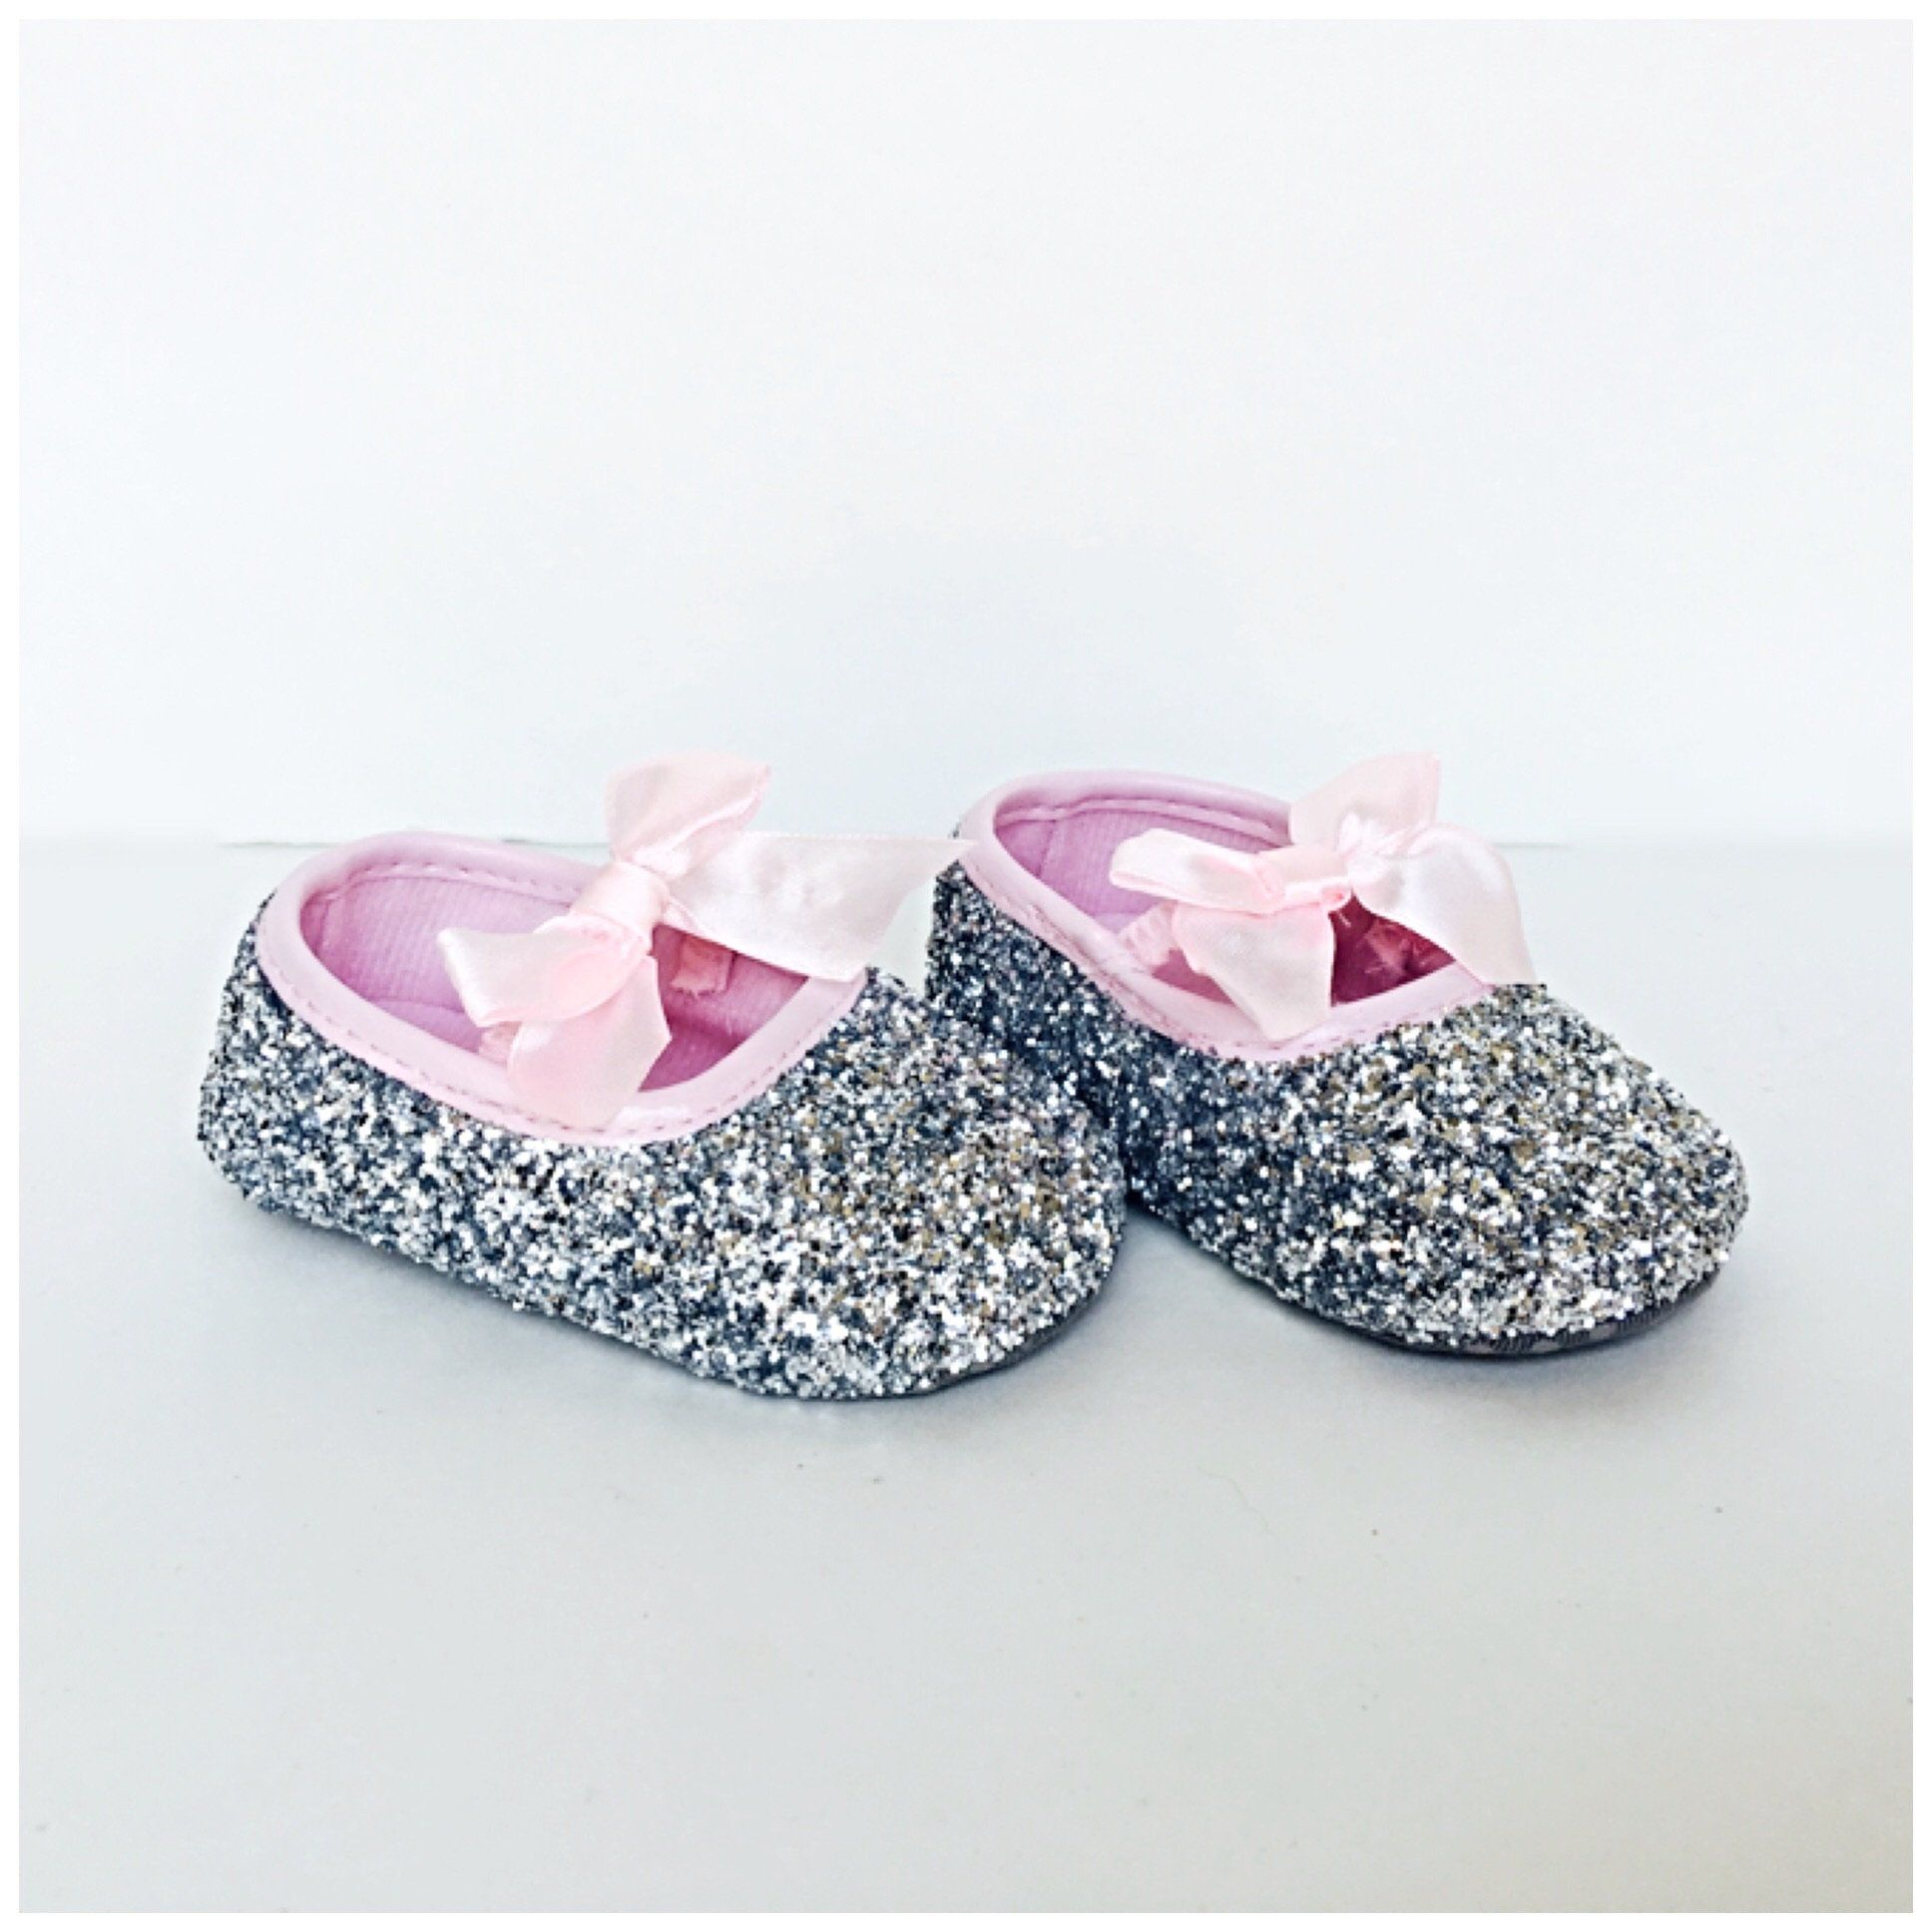 Silver Glitter Baby Shoes Pink Flower Girl Shoes